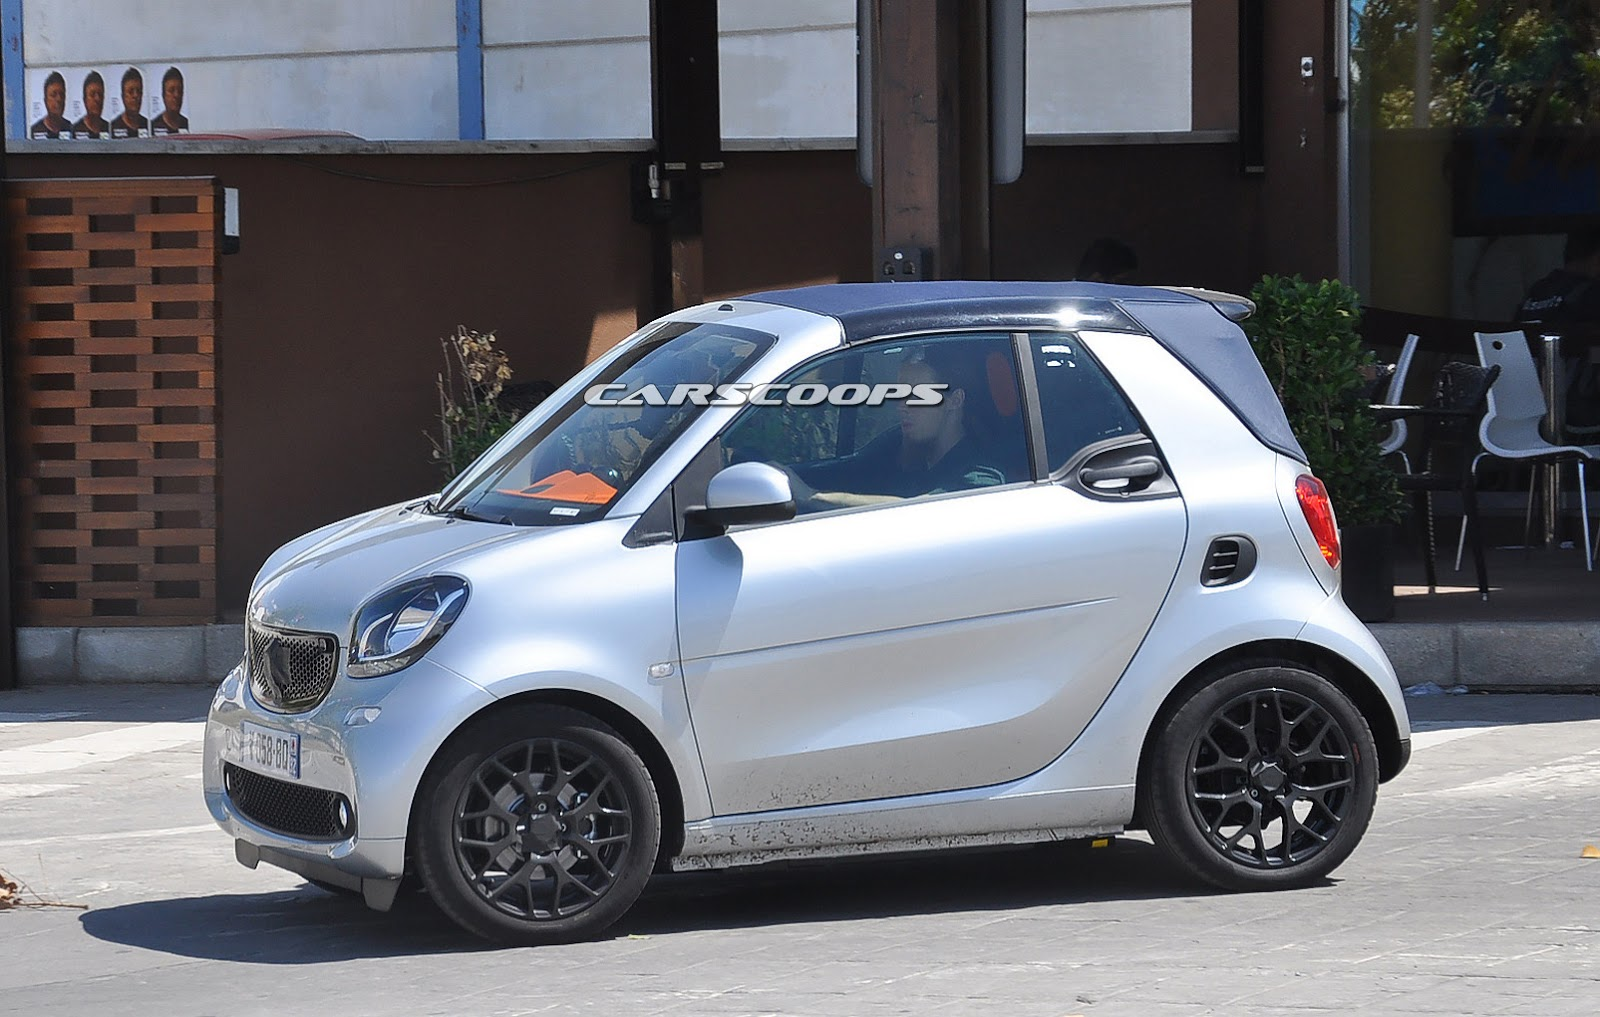 Detroit 2016 smart fortwo cabrio flashlight edition [Video